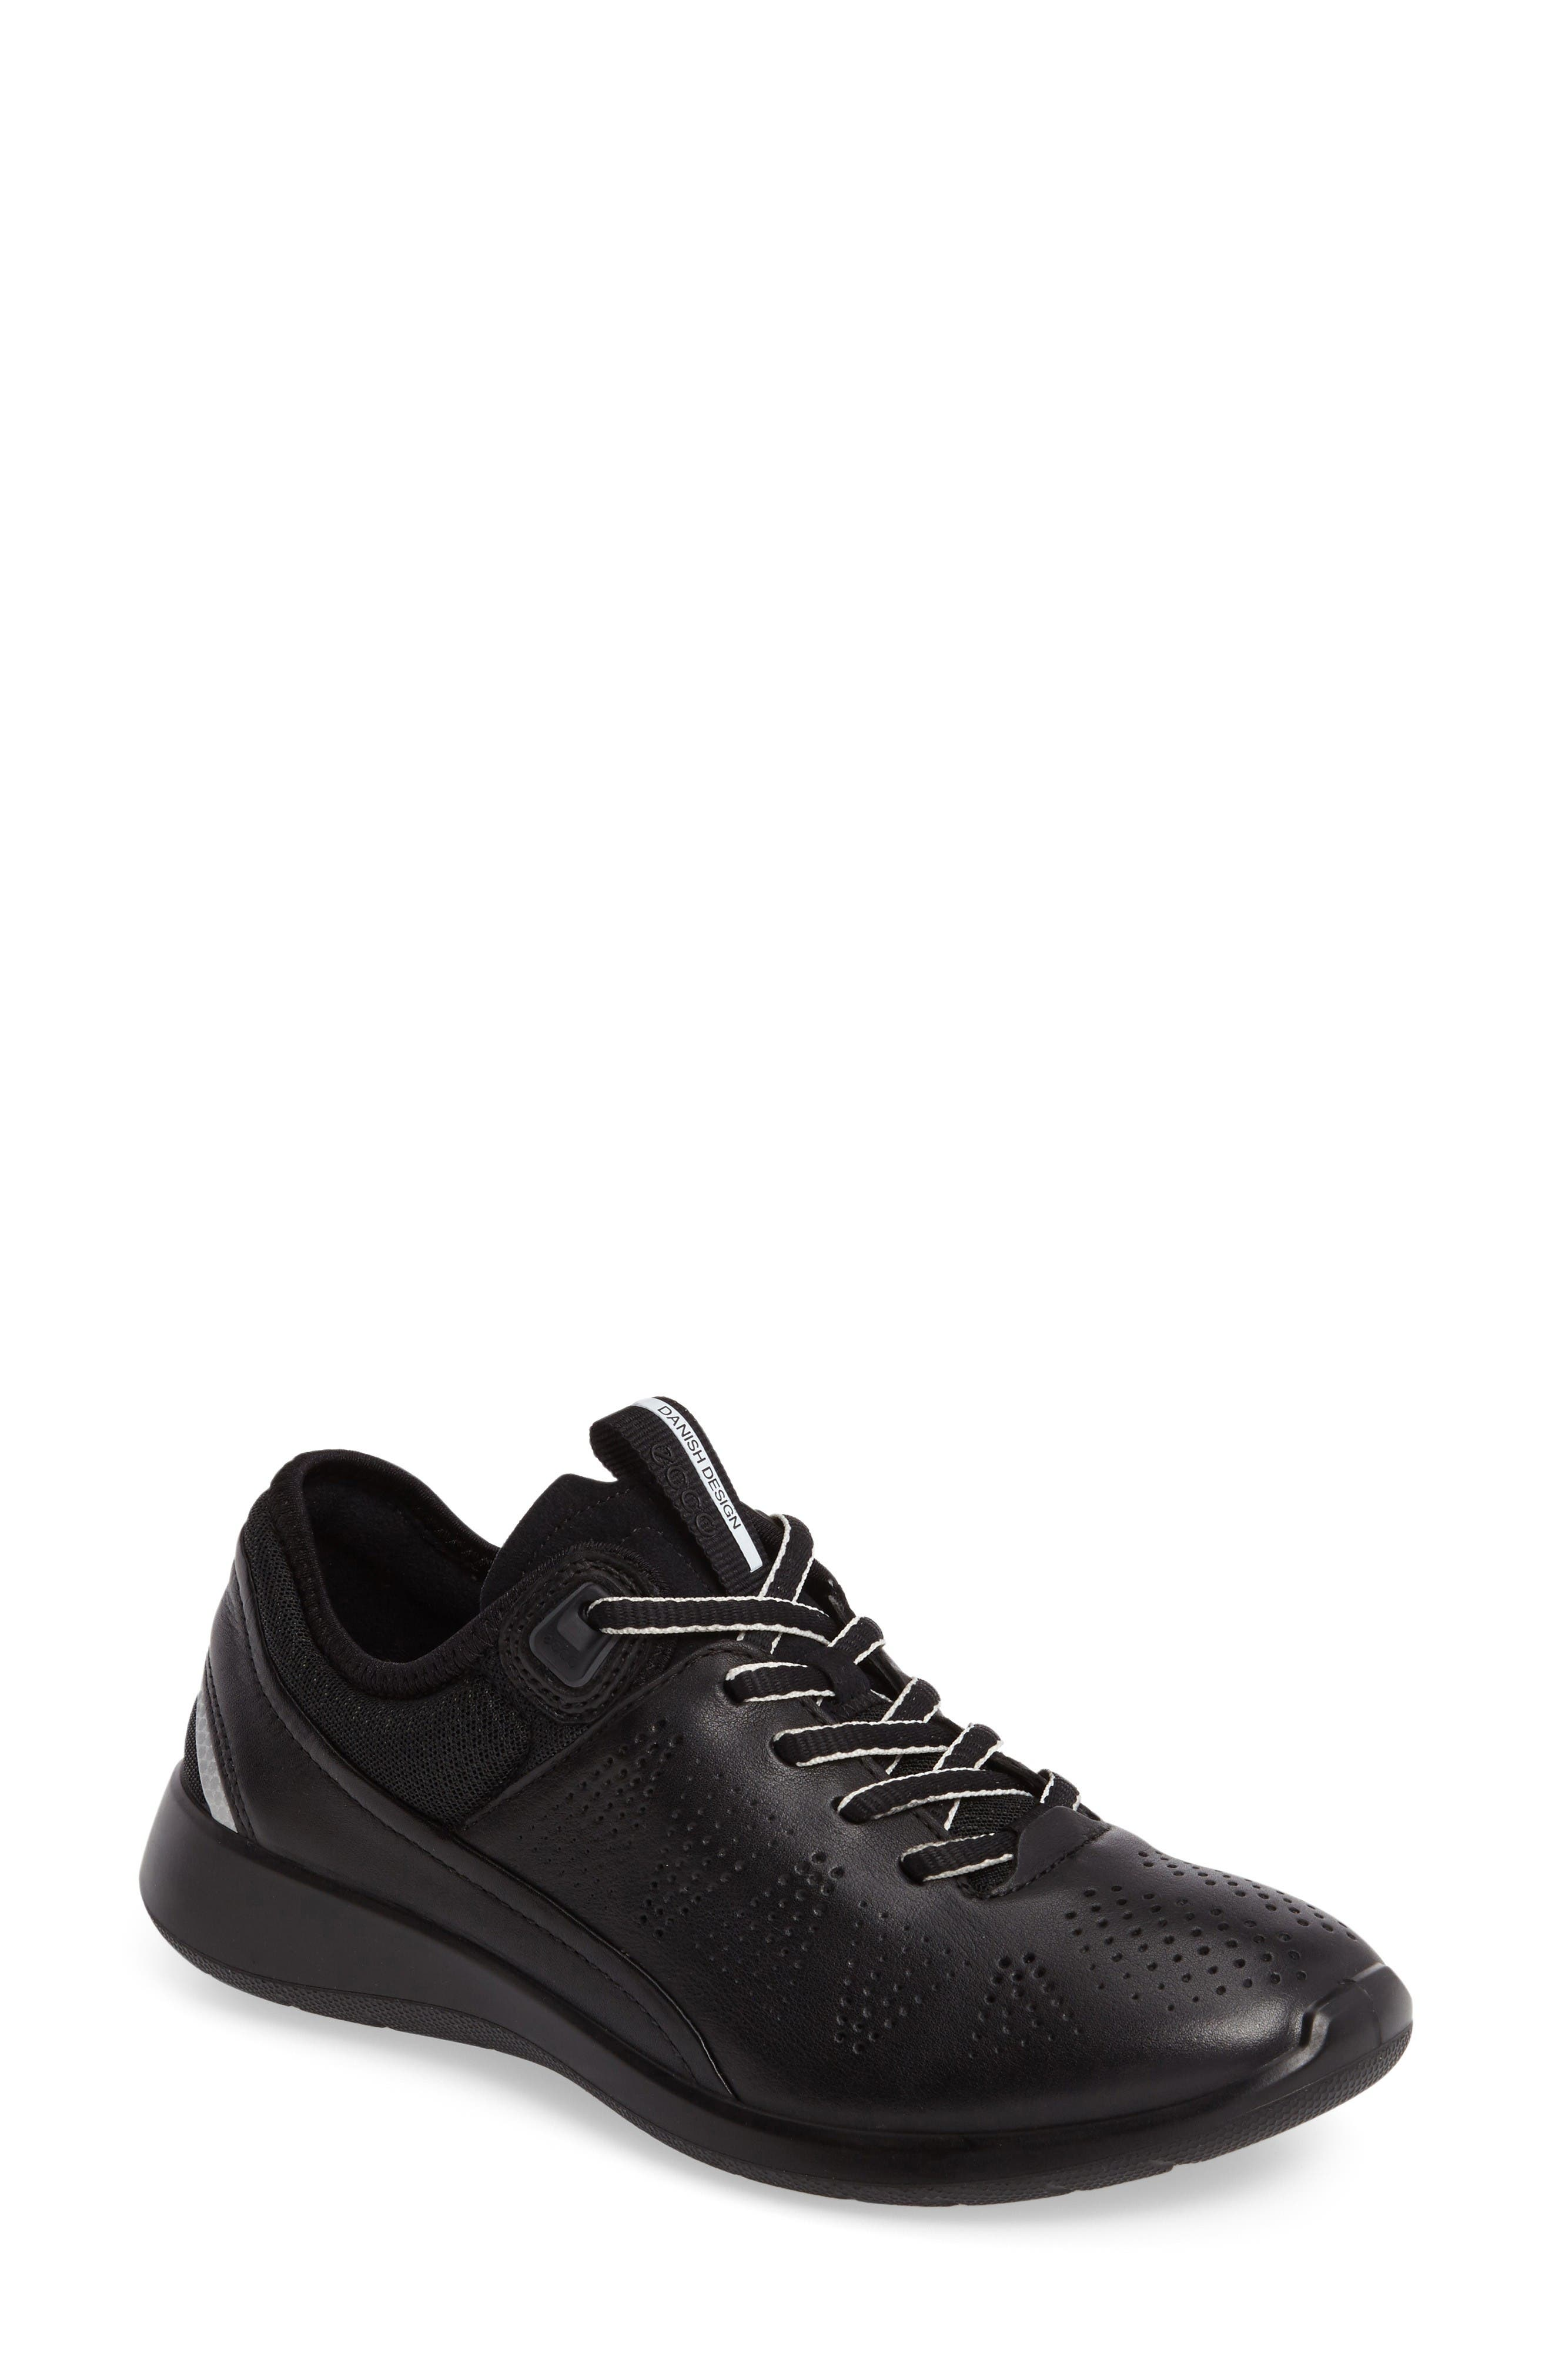 Soft 5 Sneaker,                             Main thumbnail 1, color,                             Black Leather